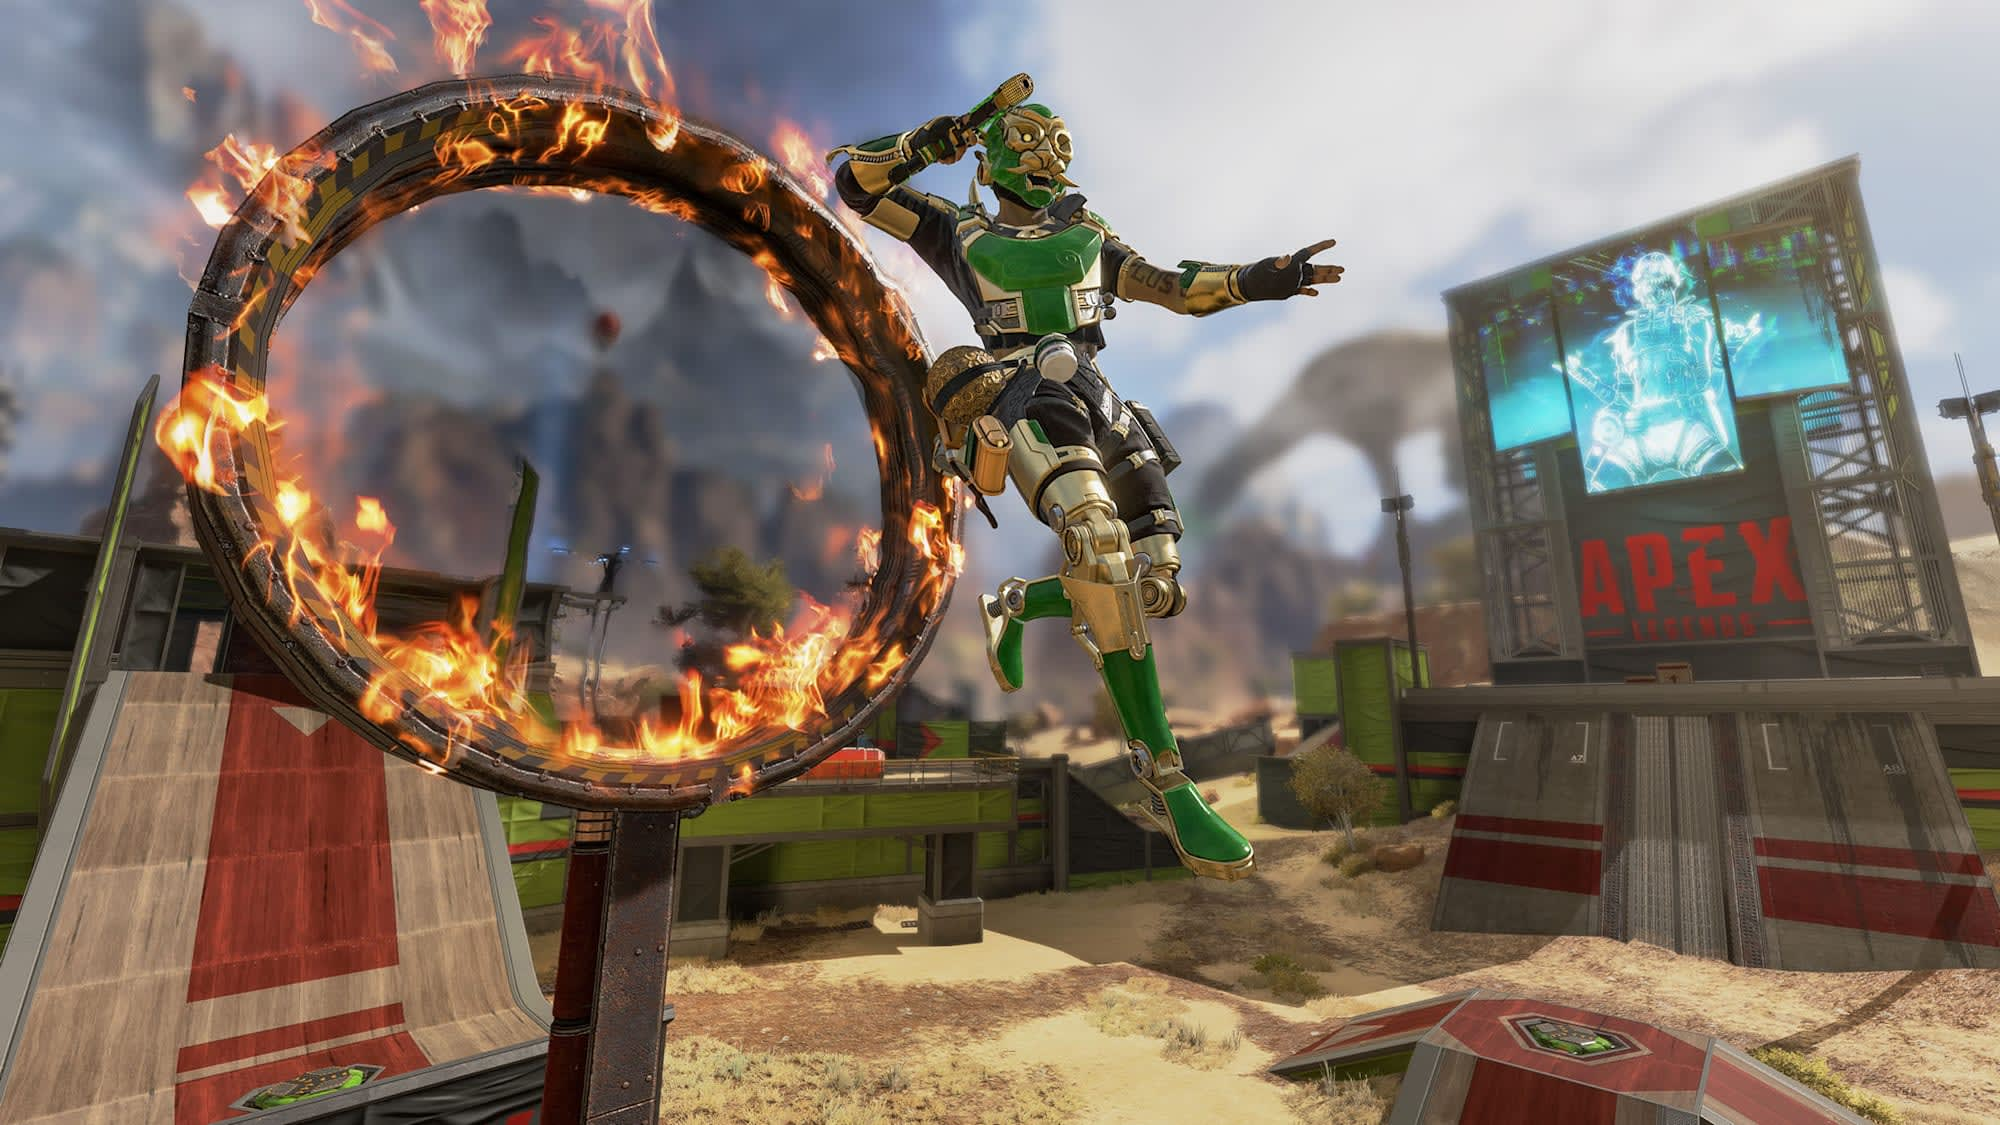 'Apex Legends' Iron Crown event goes live with solo mode